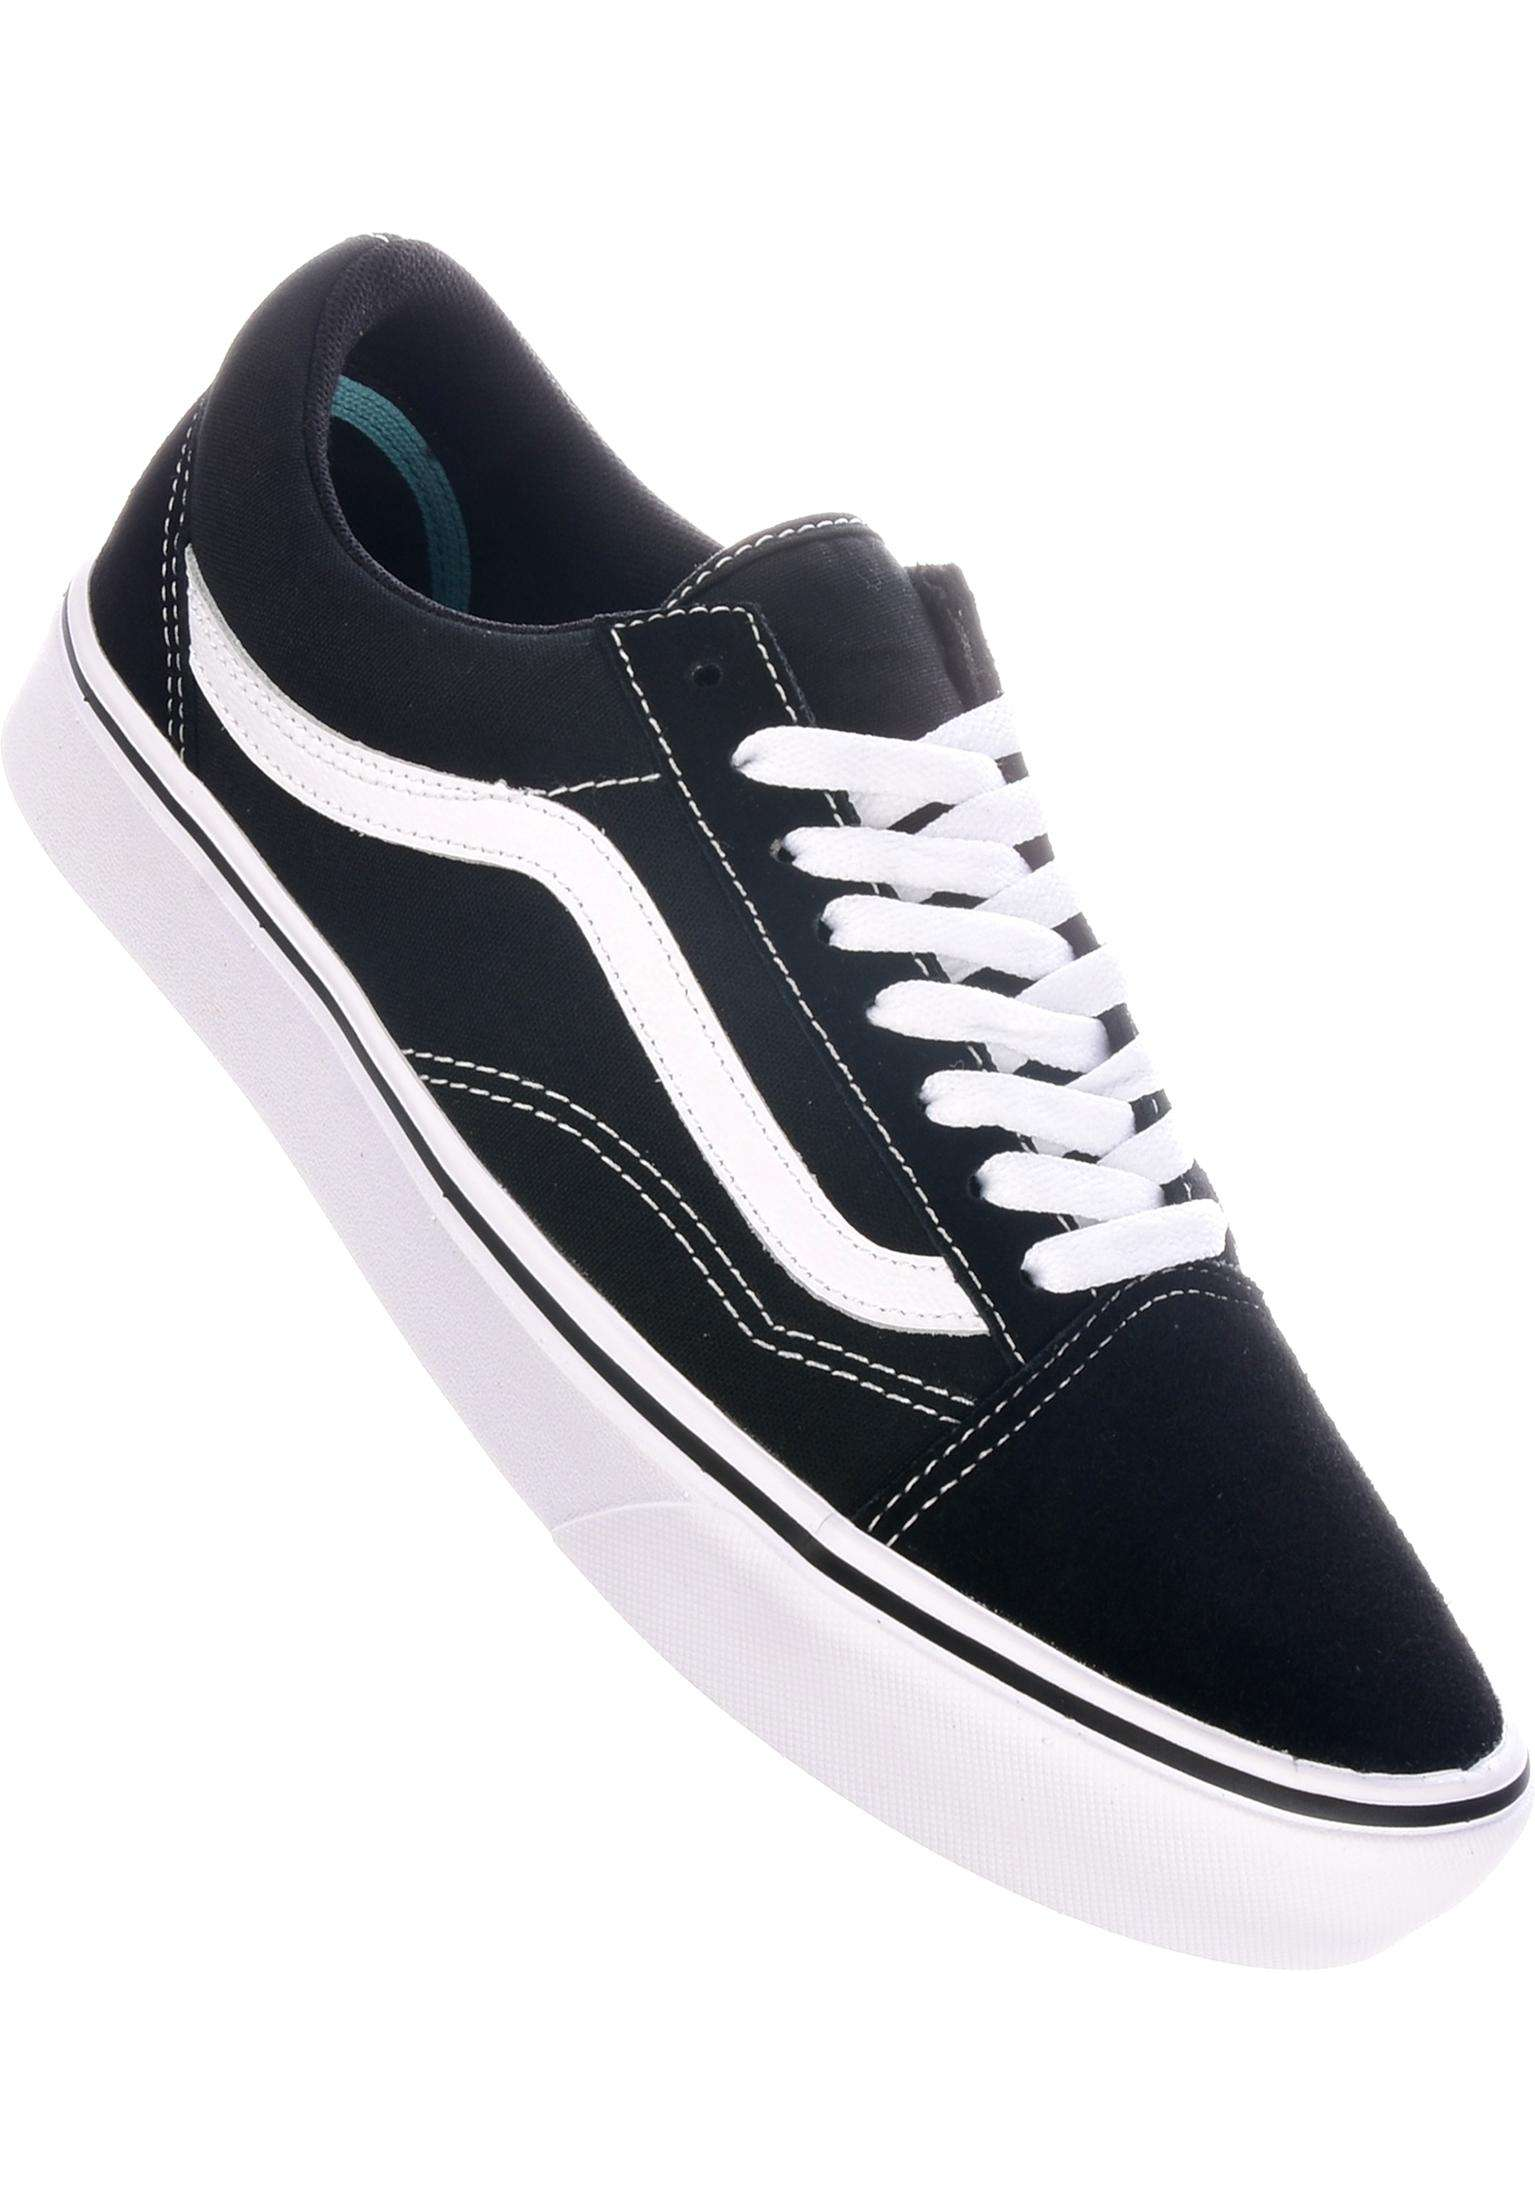 Old Skool Comfy Cush Vans All Shoes in black-white for Men  e592f5afa